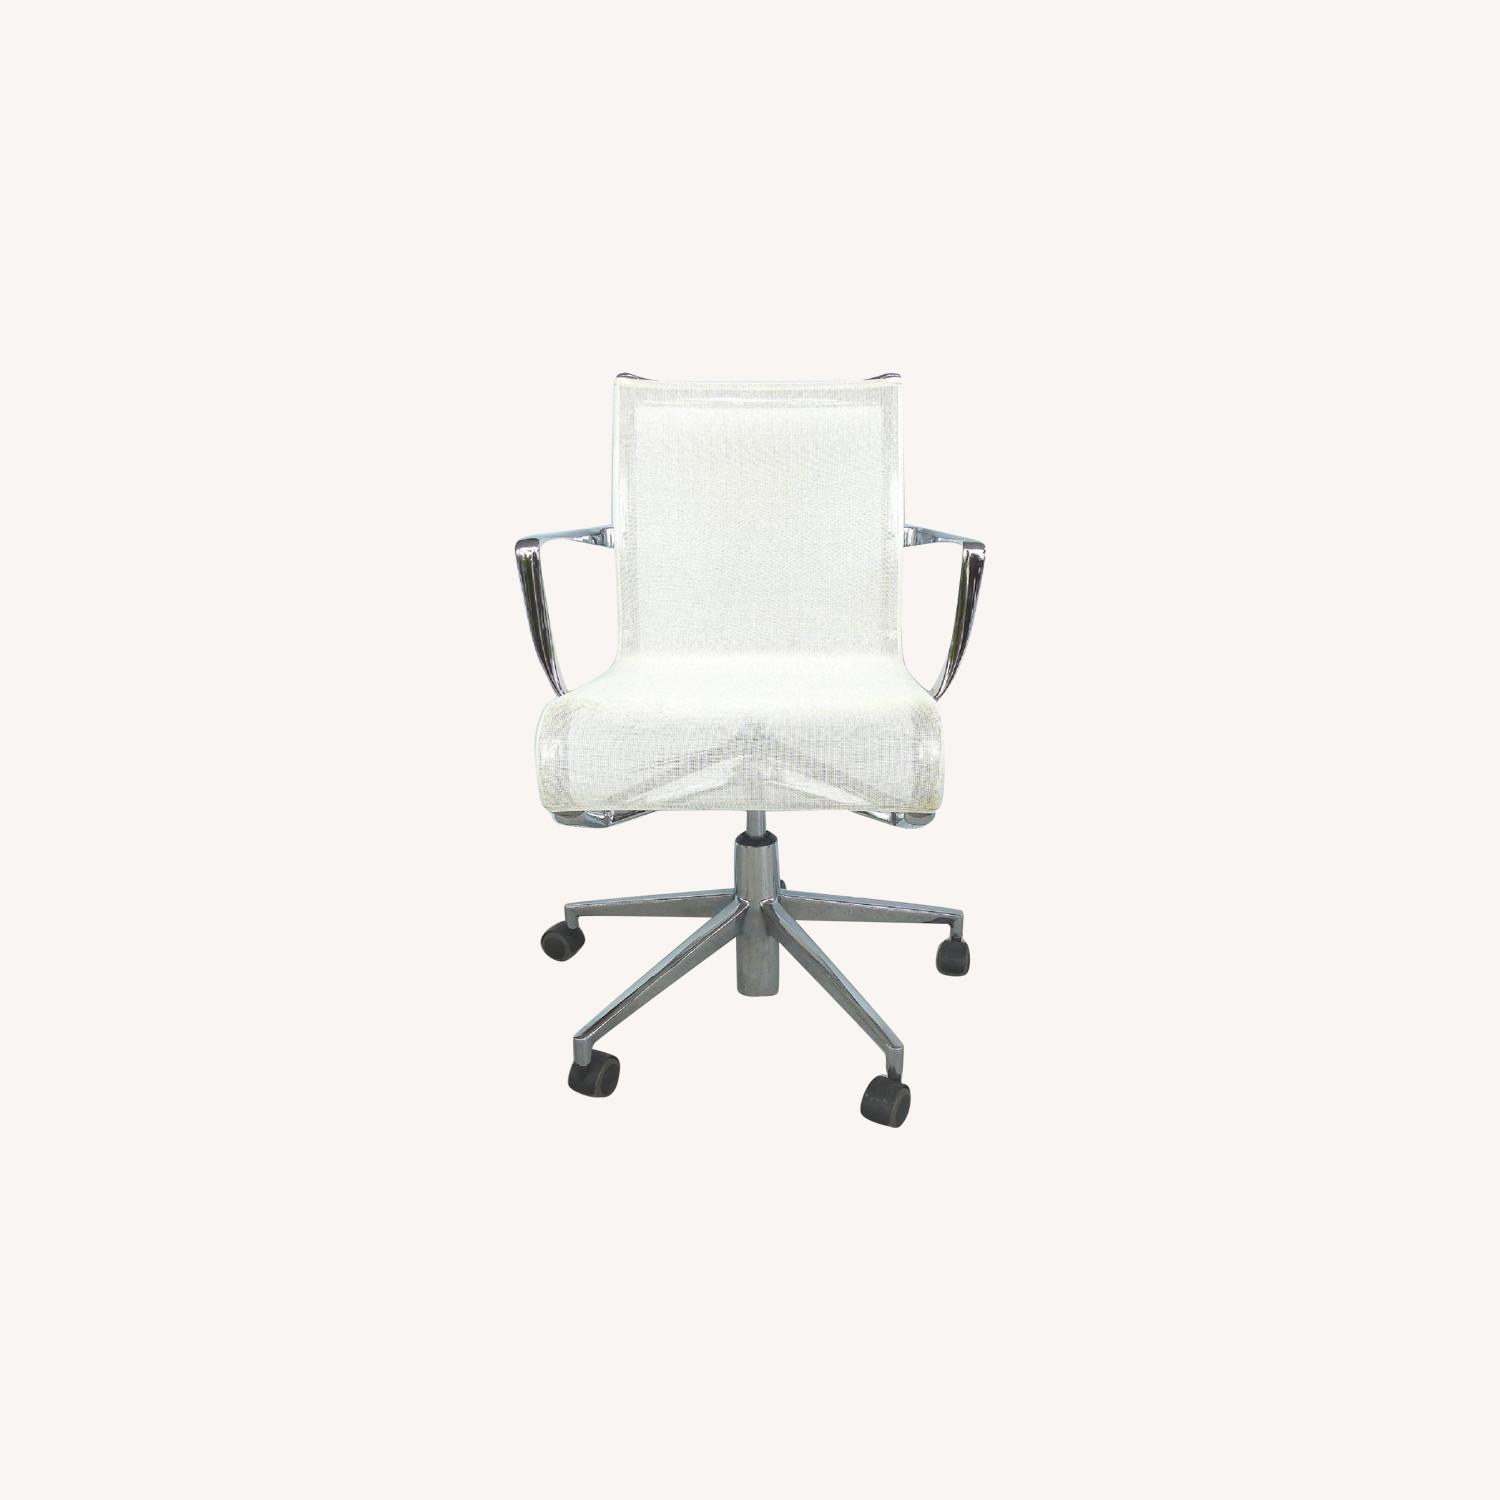 Kartell Alberto Meda Rolling Office Chairs - image-10